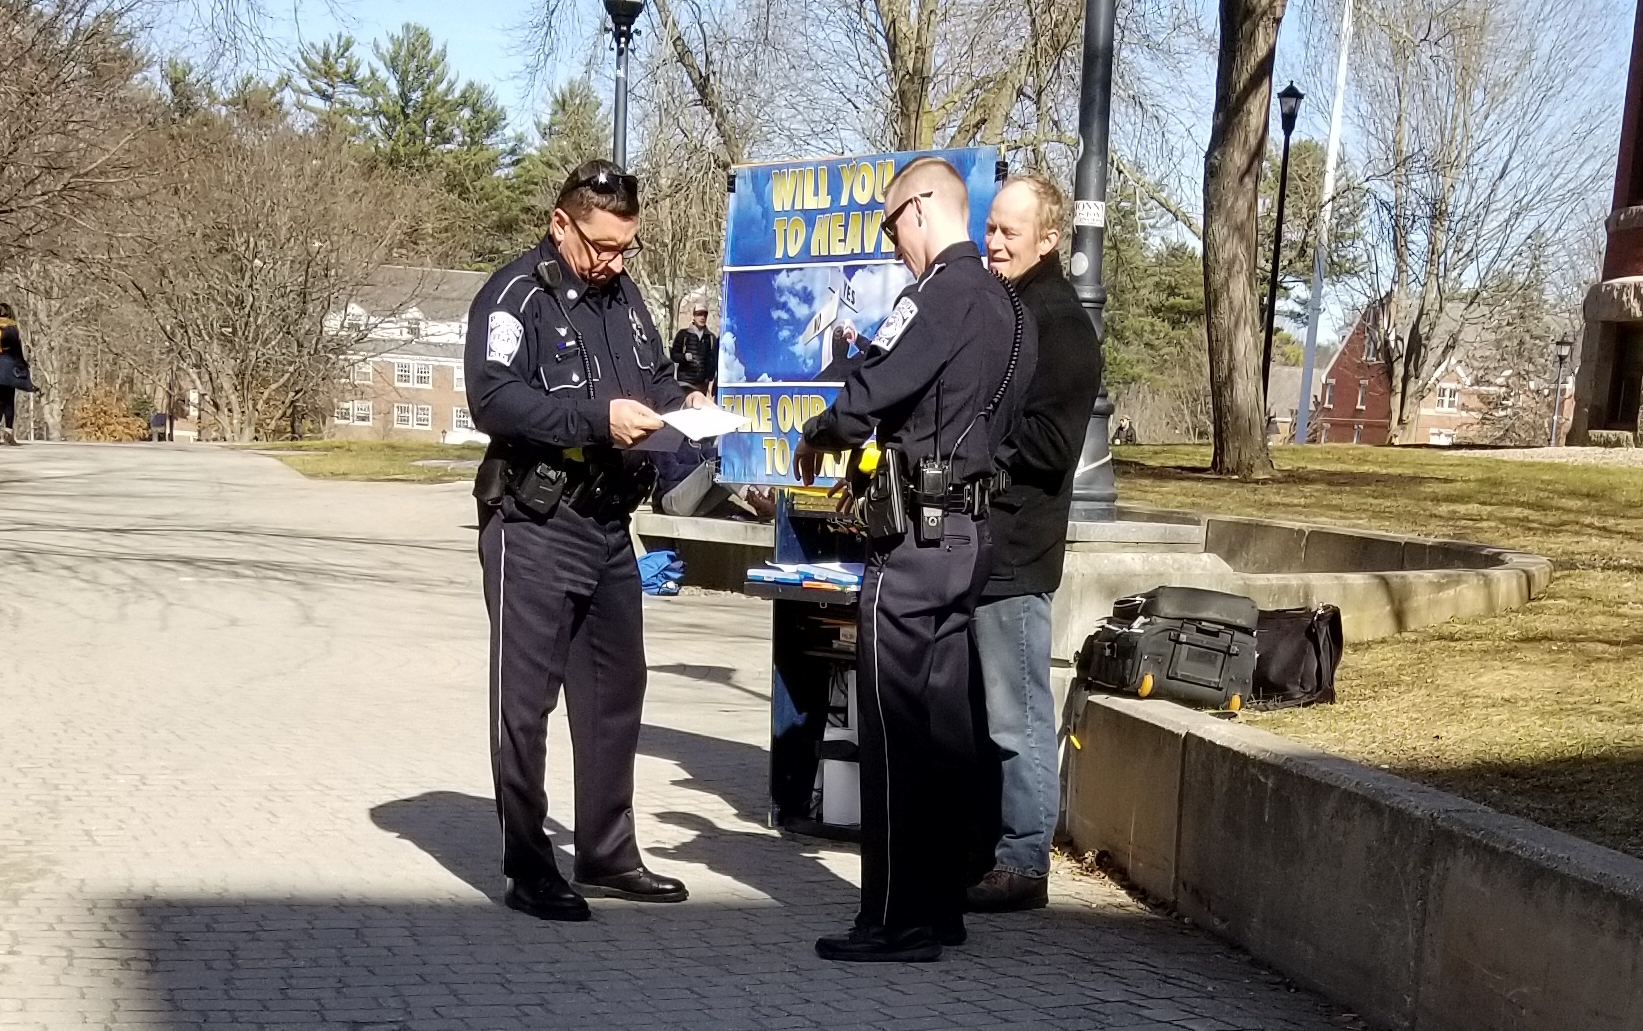 We had an unseasonably warm day at the end of February, so we headed to the University of New Hampshire. Over 600 gospel booklets were given out! Someone called the Police on us, but the Officers were very polite and let us continue our ministry work unhindered. You can see the Policeman on the left checking out our permit. We thank Jesus for favor with the authorities!